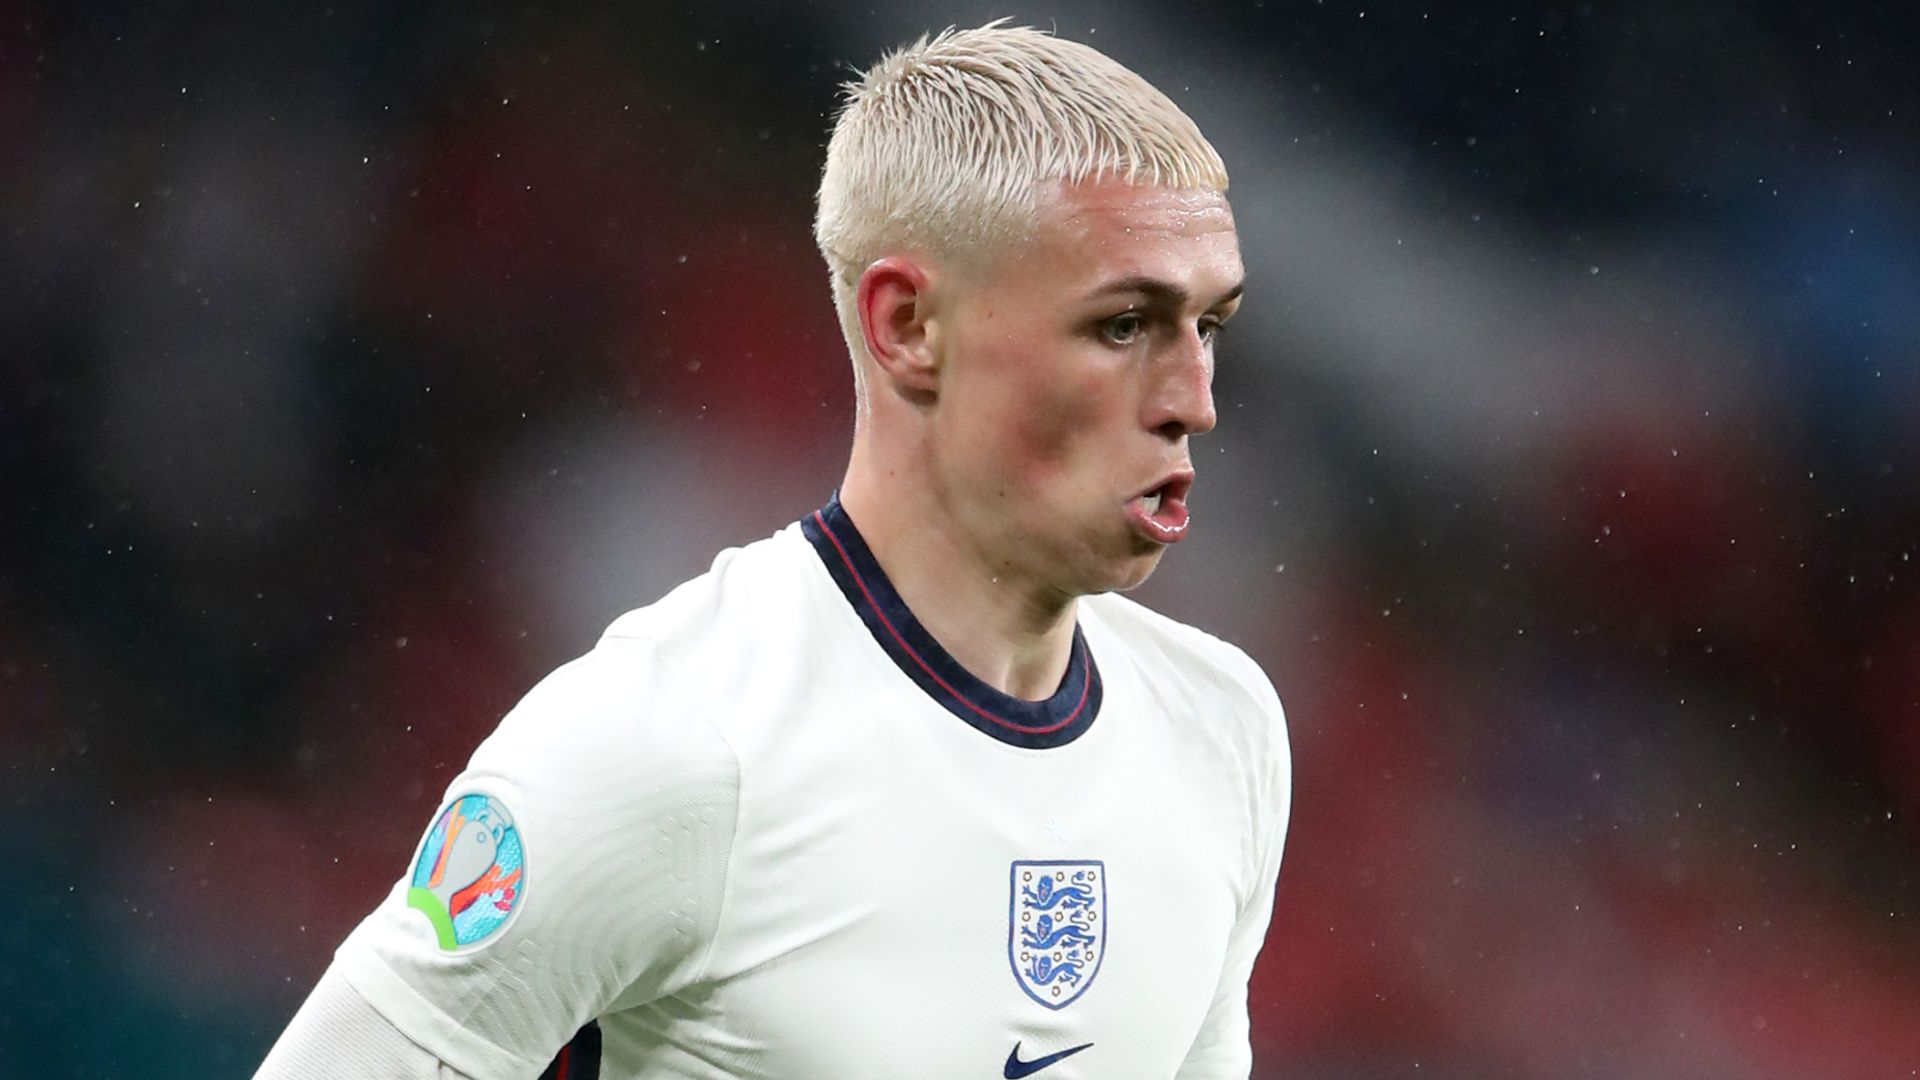 England squad to dye hair blond like Foden if they win Euros